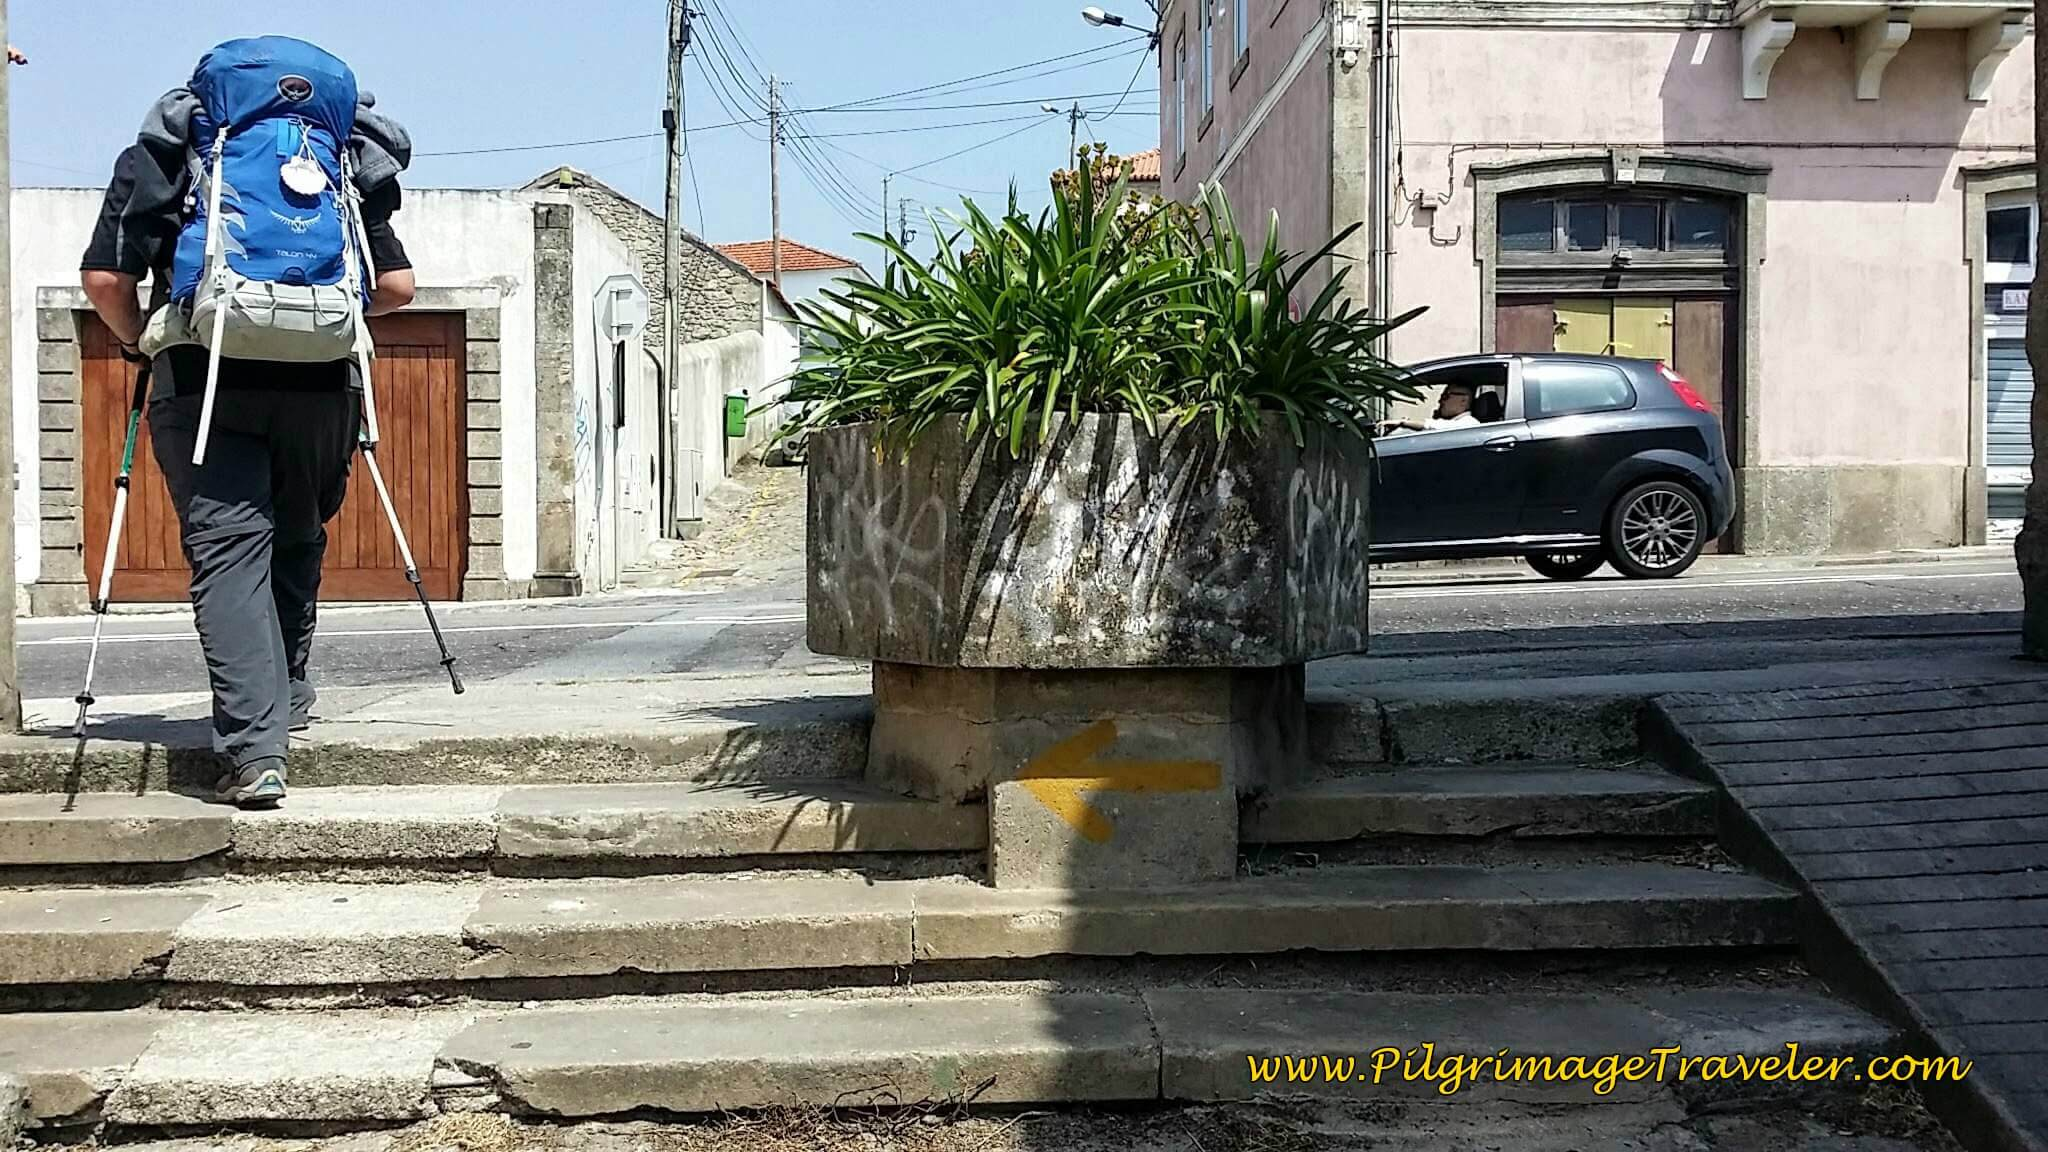 Turn Left at Top of Stairs Onto N13 into Vila do Conde on day fifteen of the Camino Portugués on the Senda Litoral